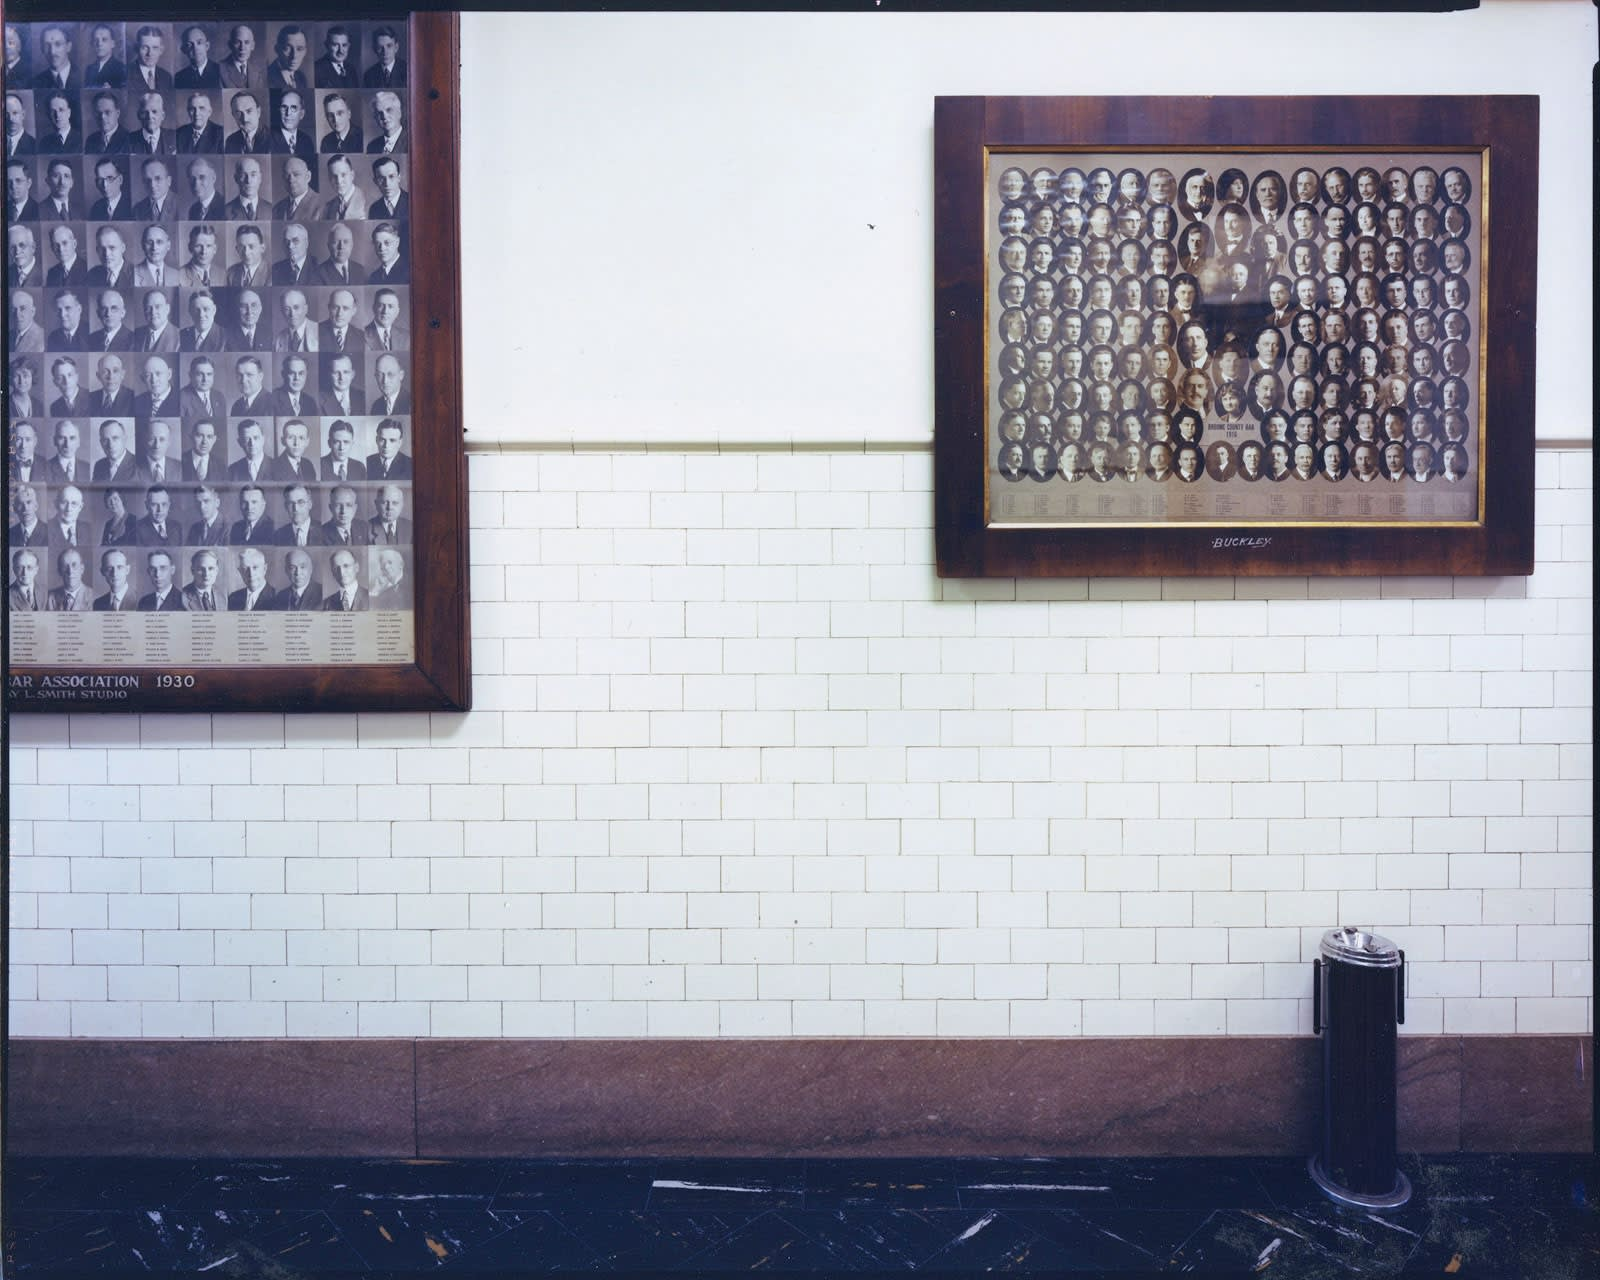 Bruce Wrighton, Courthouse (portraits in hallway), Broom County, NY, 1987